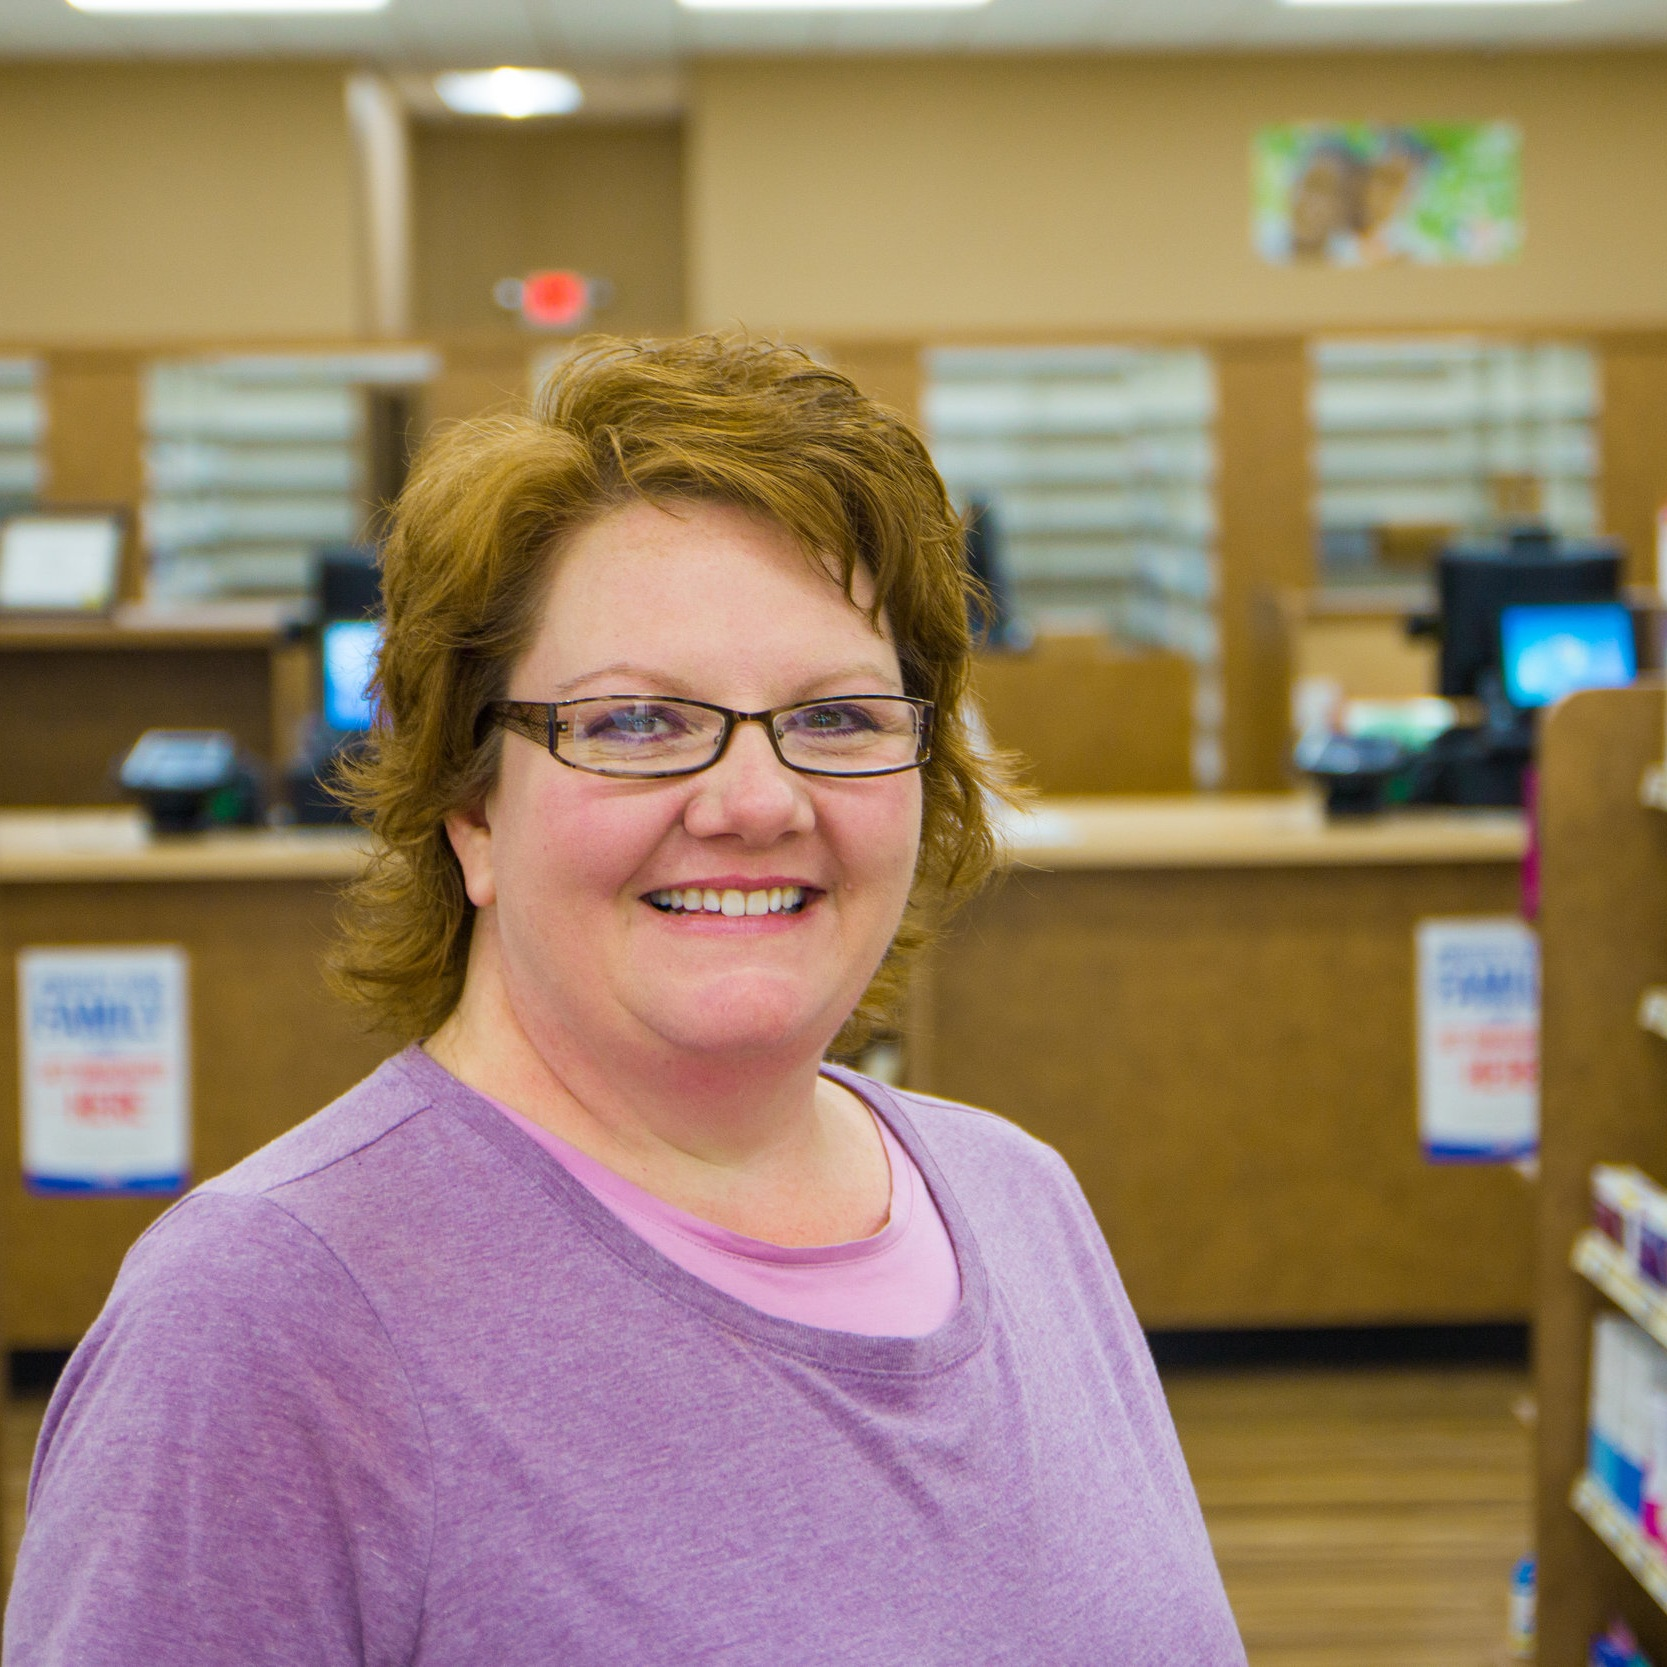 Amy Y - DME  Amy has been employed with Key Drugs since 2015. She graduated from Puxico High School in 1991 and has attended courses at TRC in Poplar Bluff. Amy is married with 2 sons and enjoys the outdoors, her church and making crafts. Amy has a CNA license and is EMT certified. She has worked in Home Health and Hospice for 11 years.   Click here to email Amy